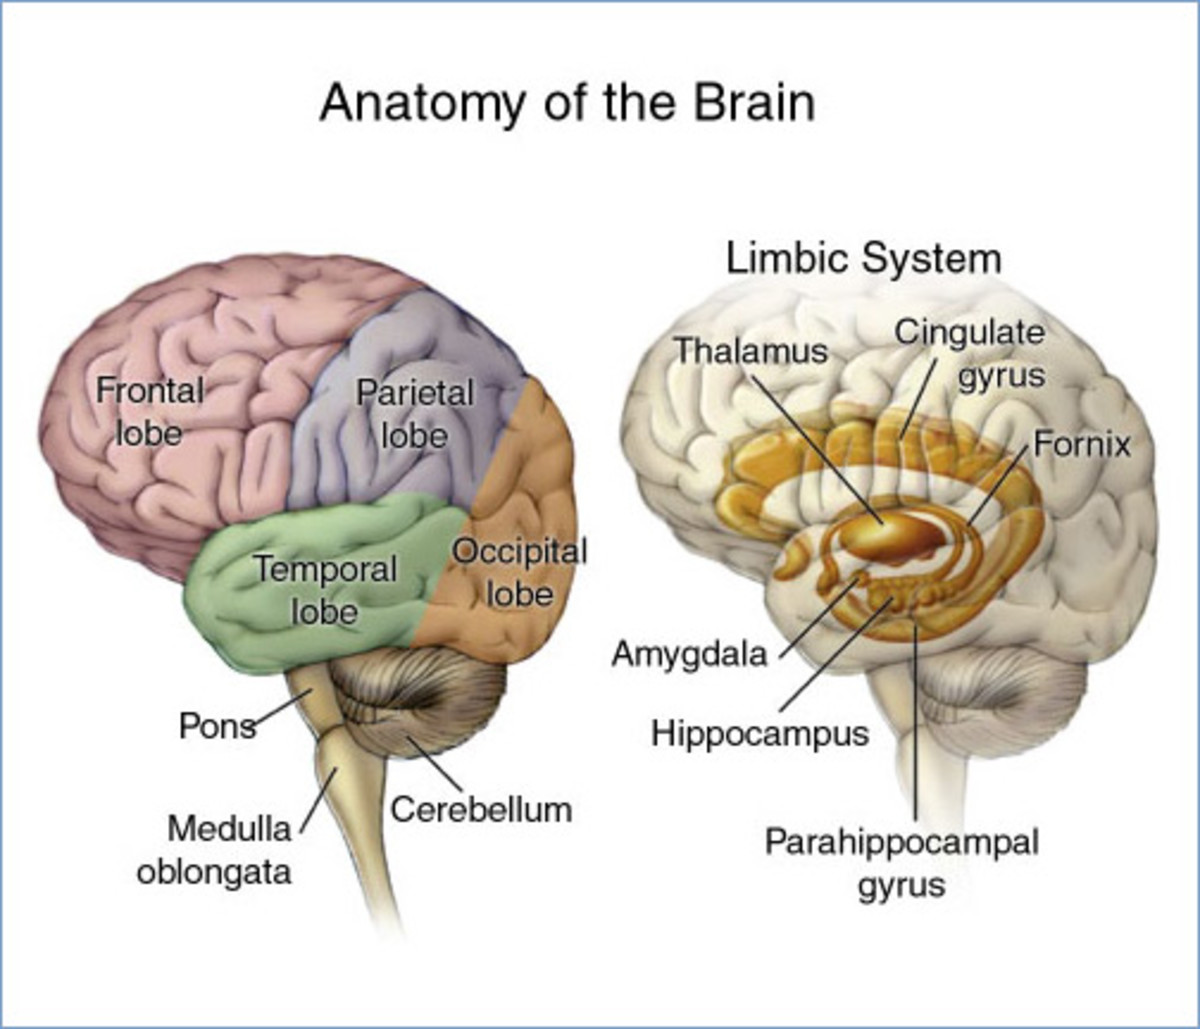 The Limbic System and different lobes of the human brain.